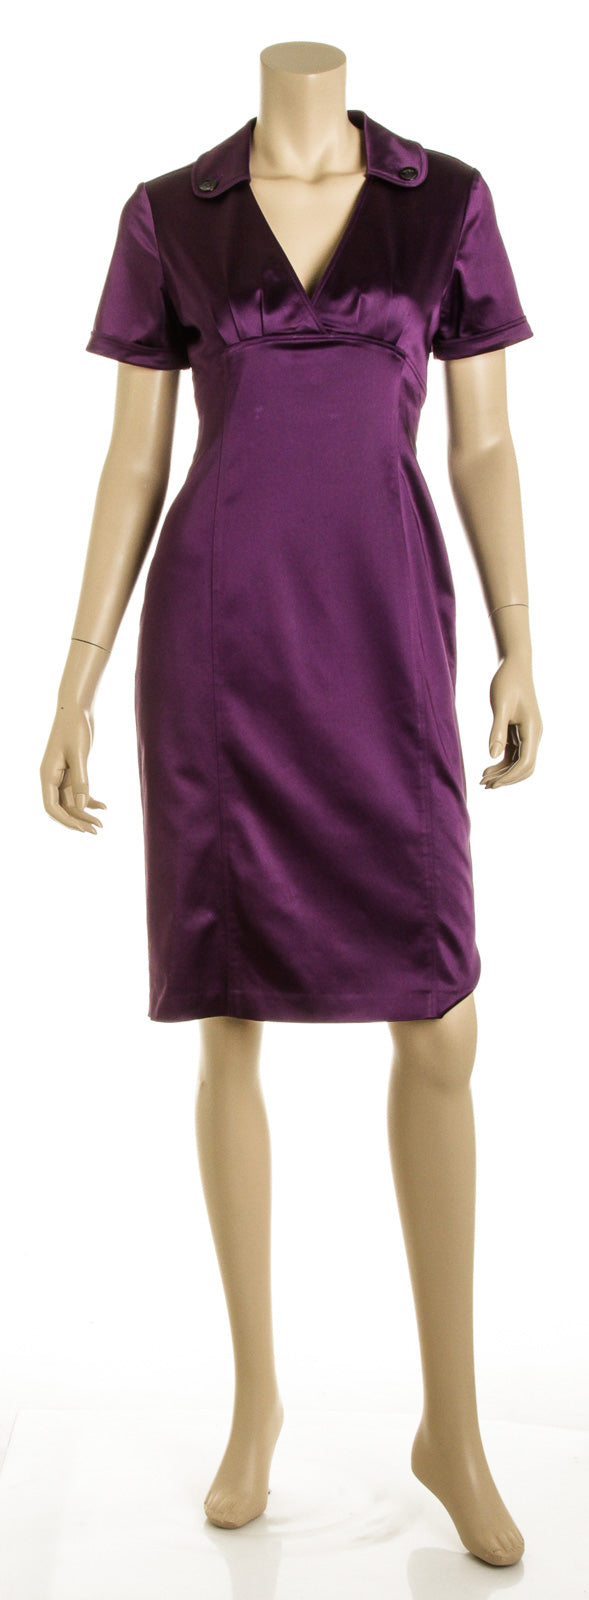 Burberry Royal Purple Silk Satin Short Sleeve Shirt Dress (Size 8)